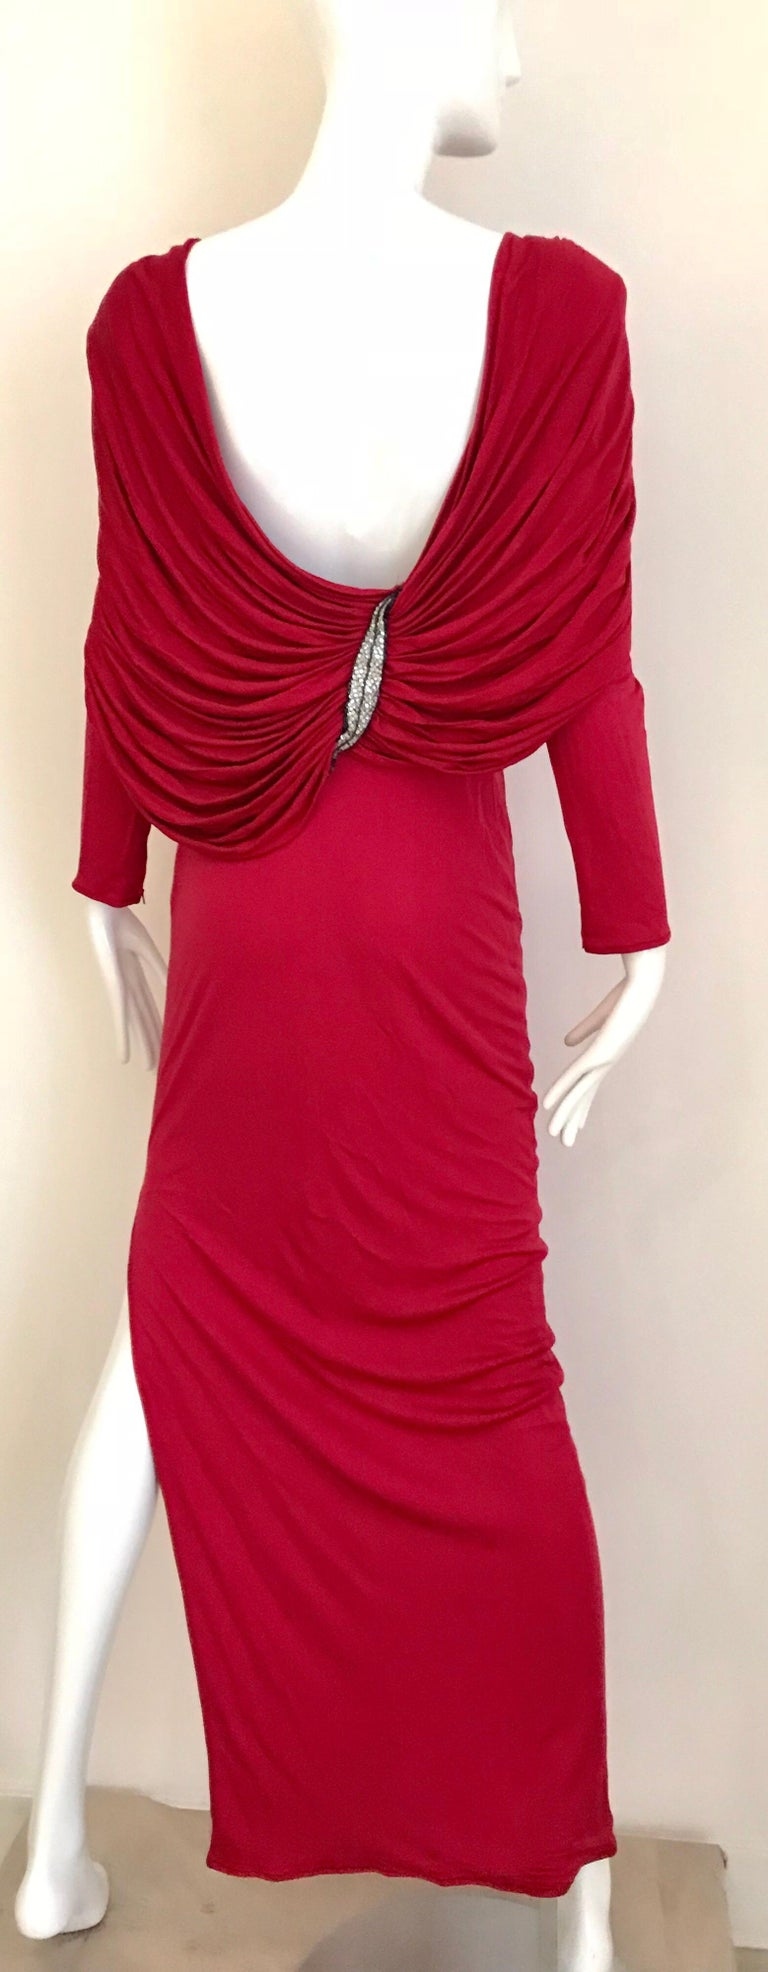 Beautiful vintage VALENTINO boutique silk jersey red ( more berry tone) long sleeve dress with open back ( drape). Dress has beaded appliqué on both shoulder. Perfect for holiday party. Fit best for US size 0/2/ max 4.  Although the dress marked